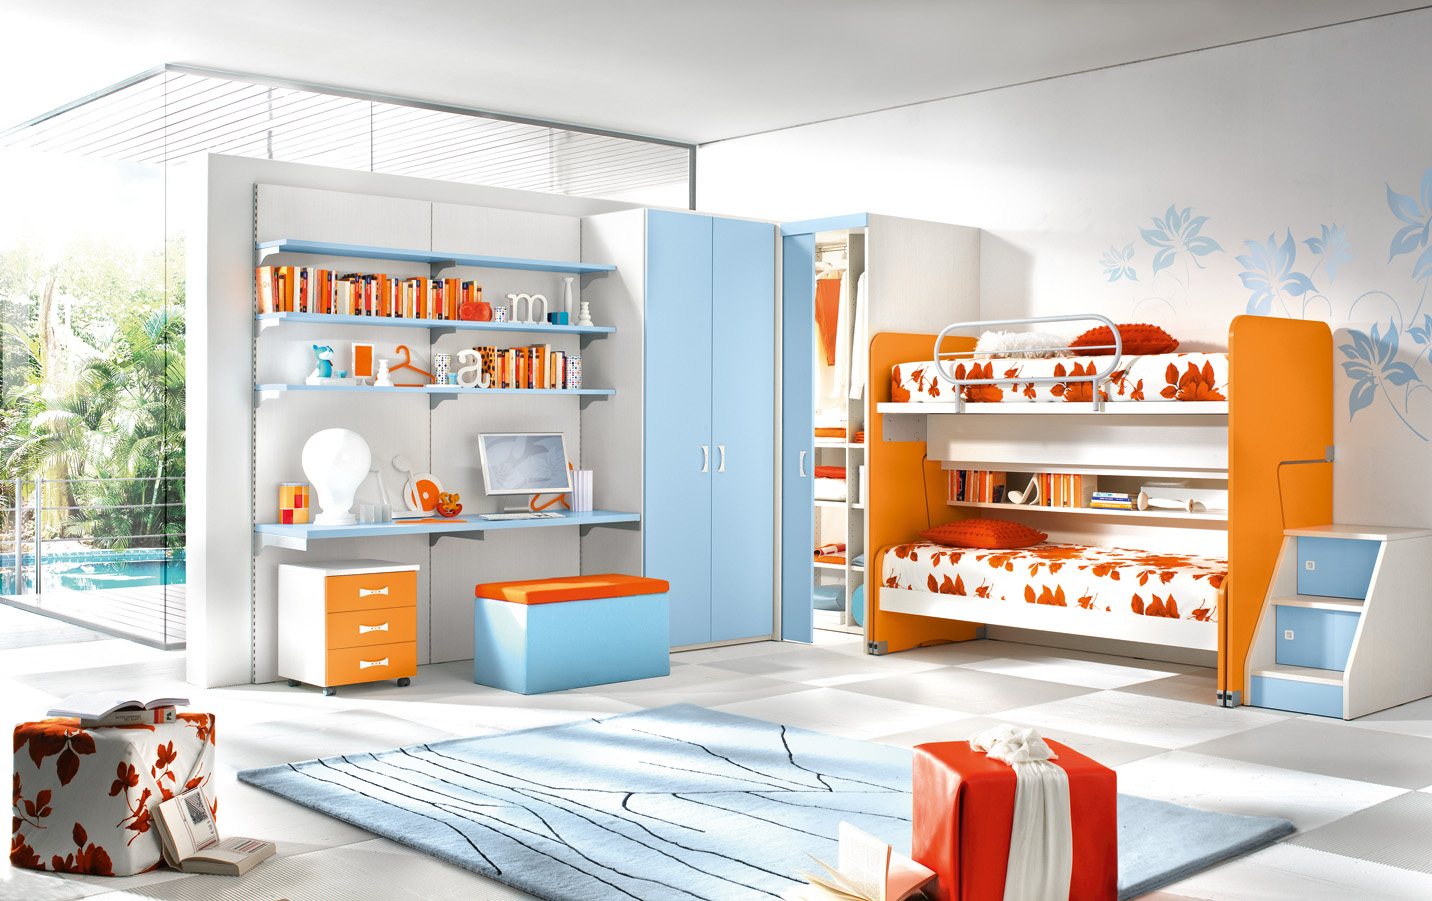 20 contemporary kids room interior design ideas